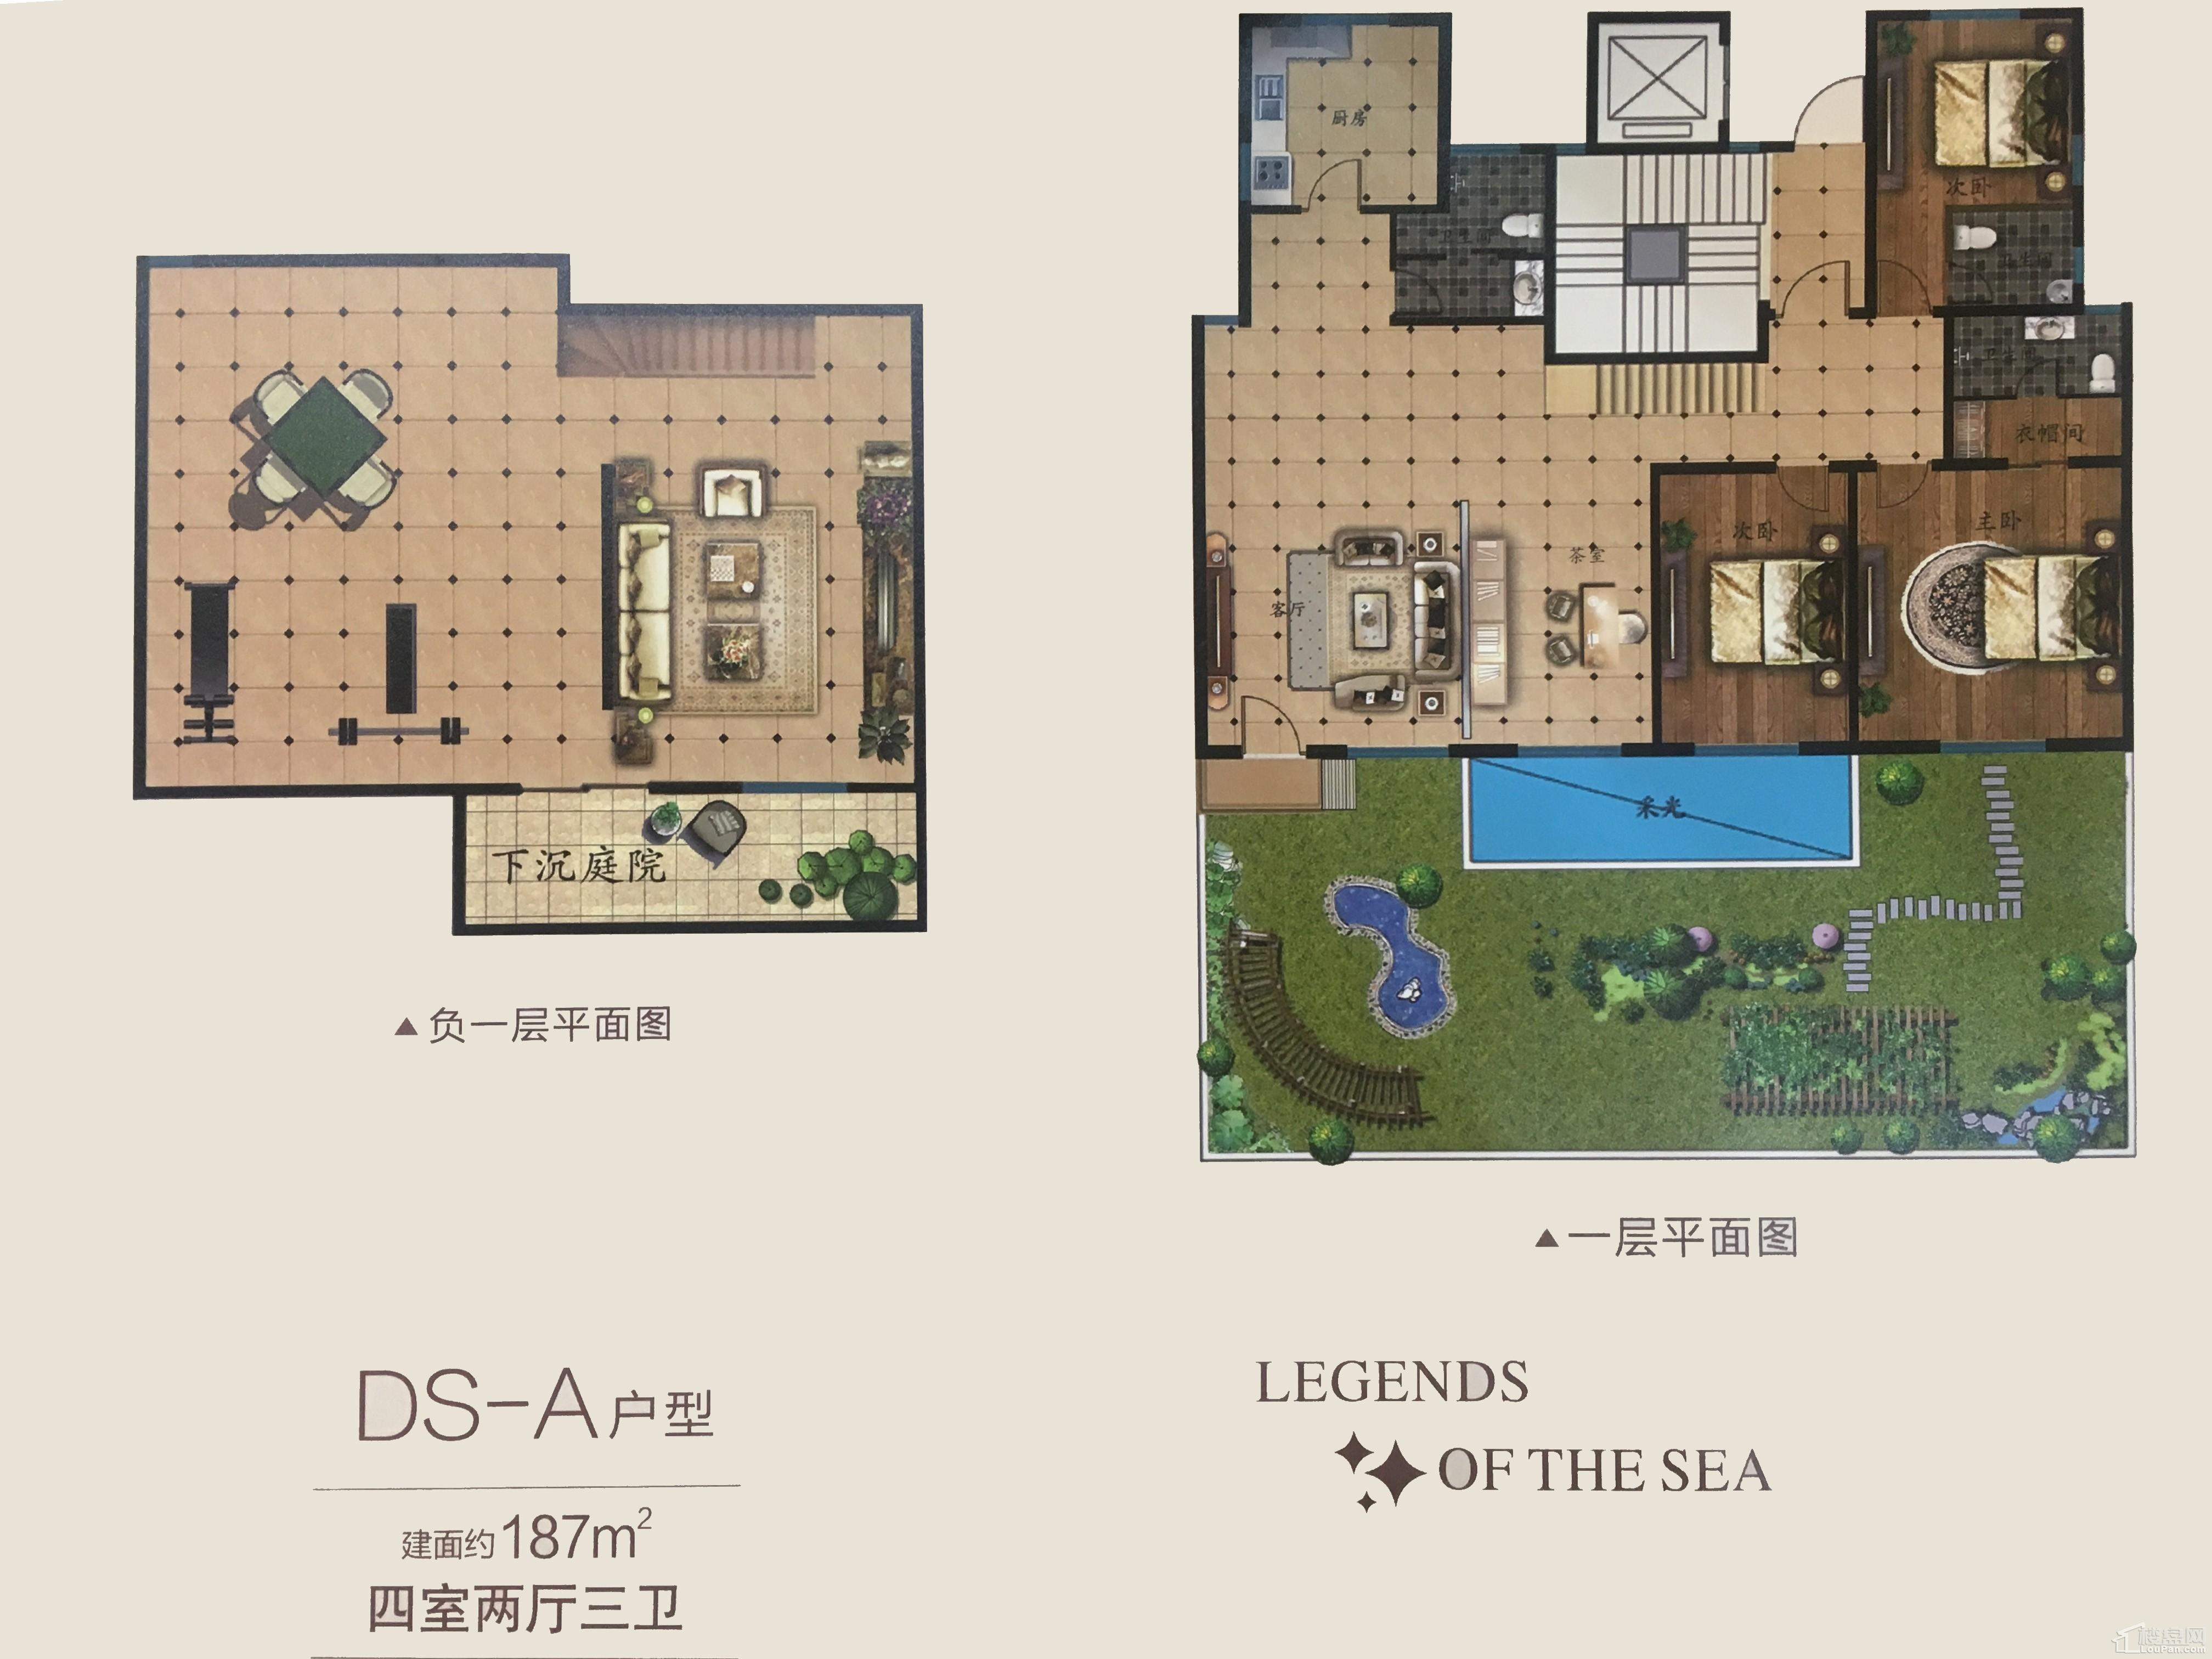 DS-A户型